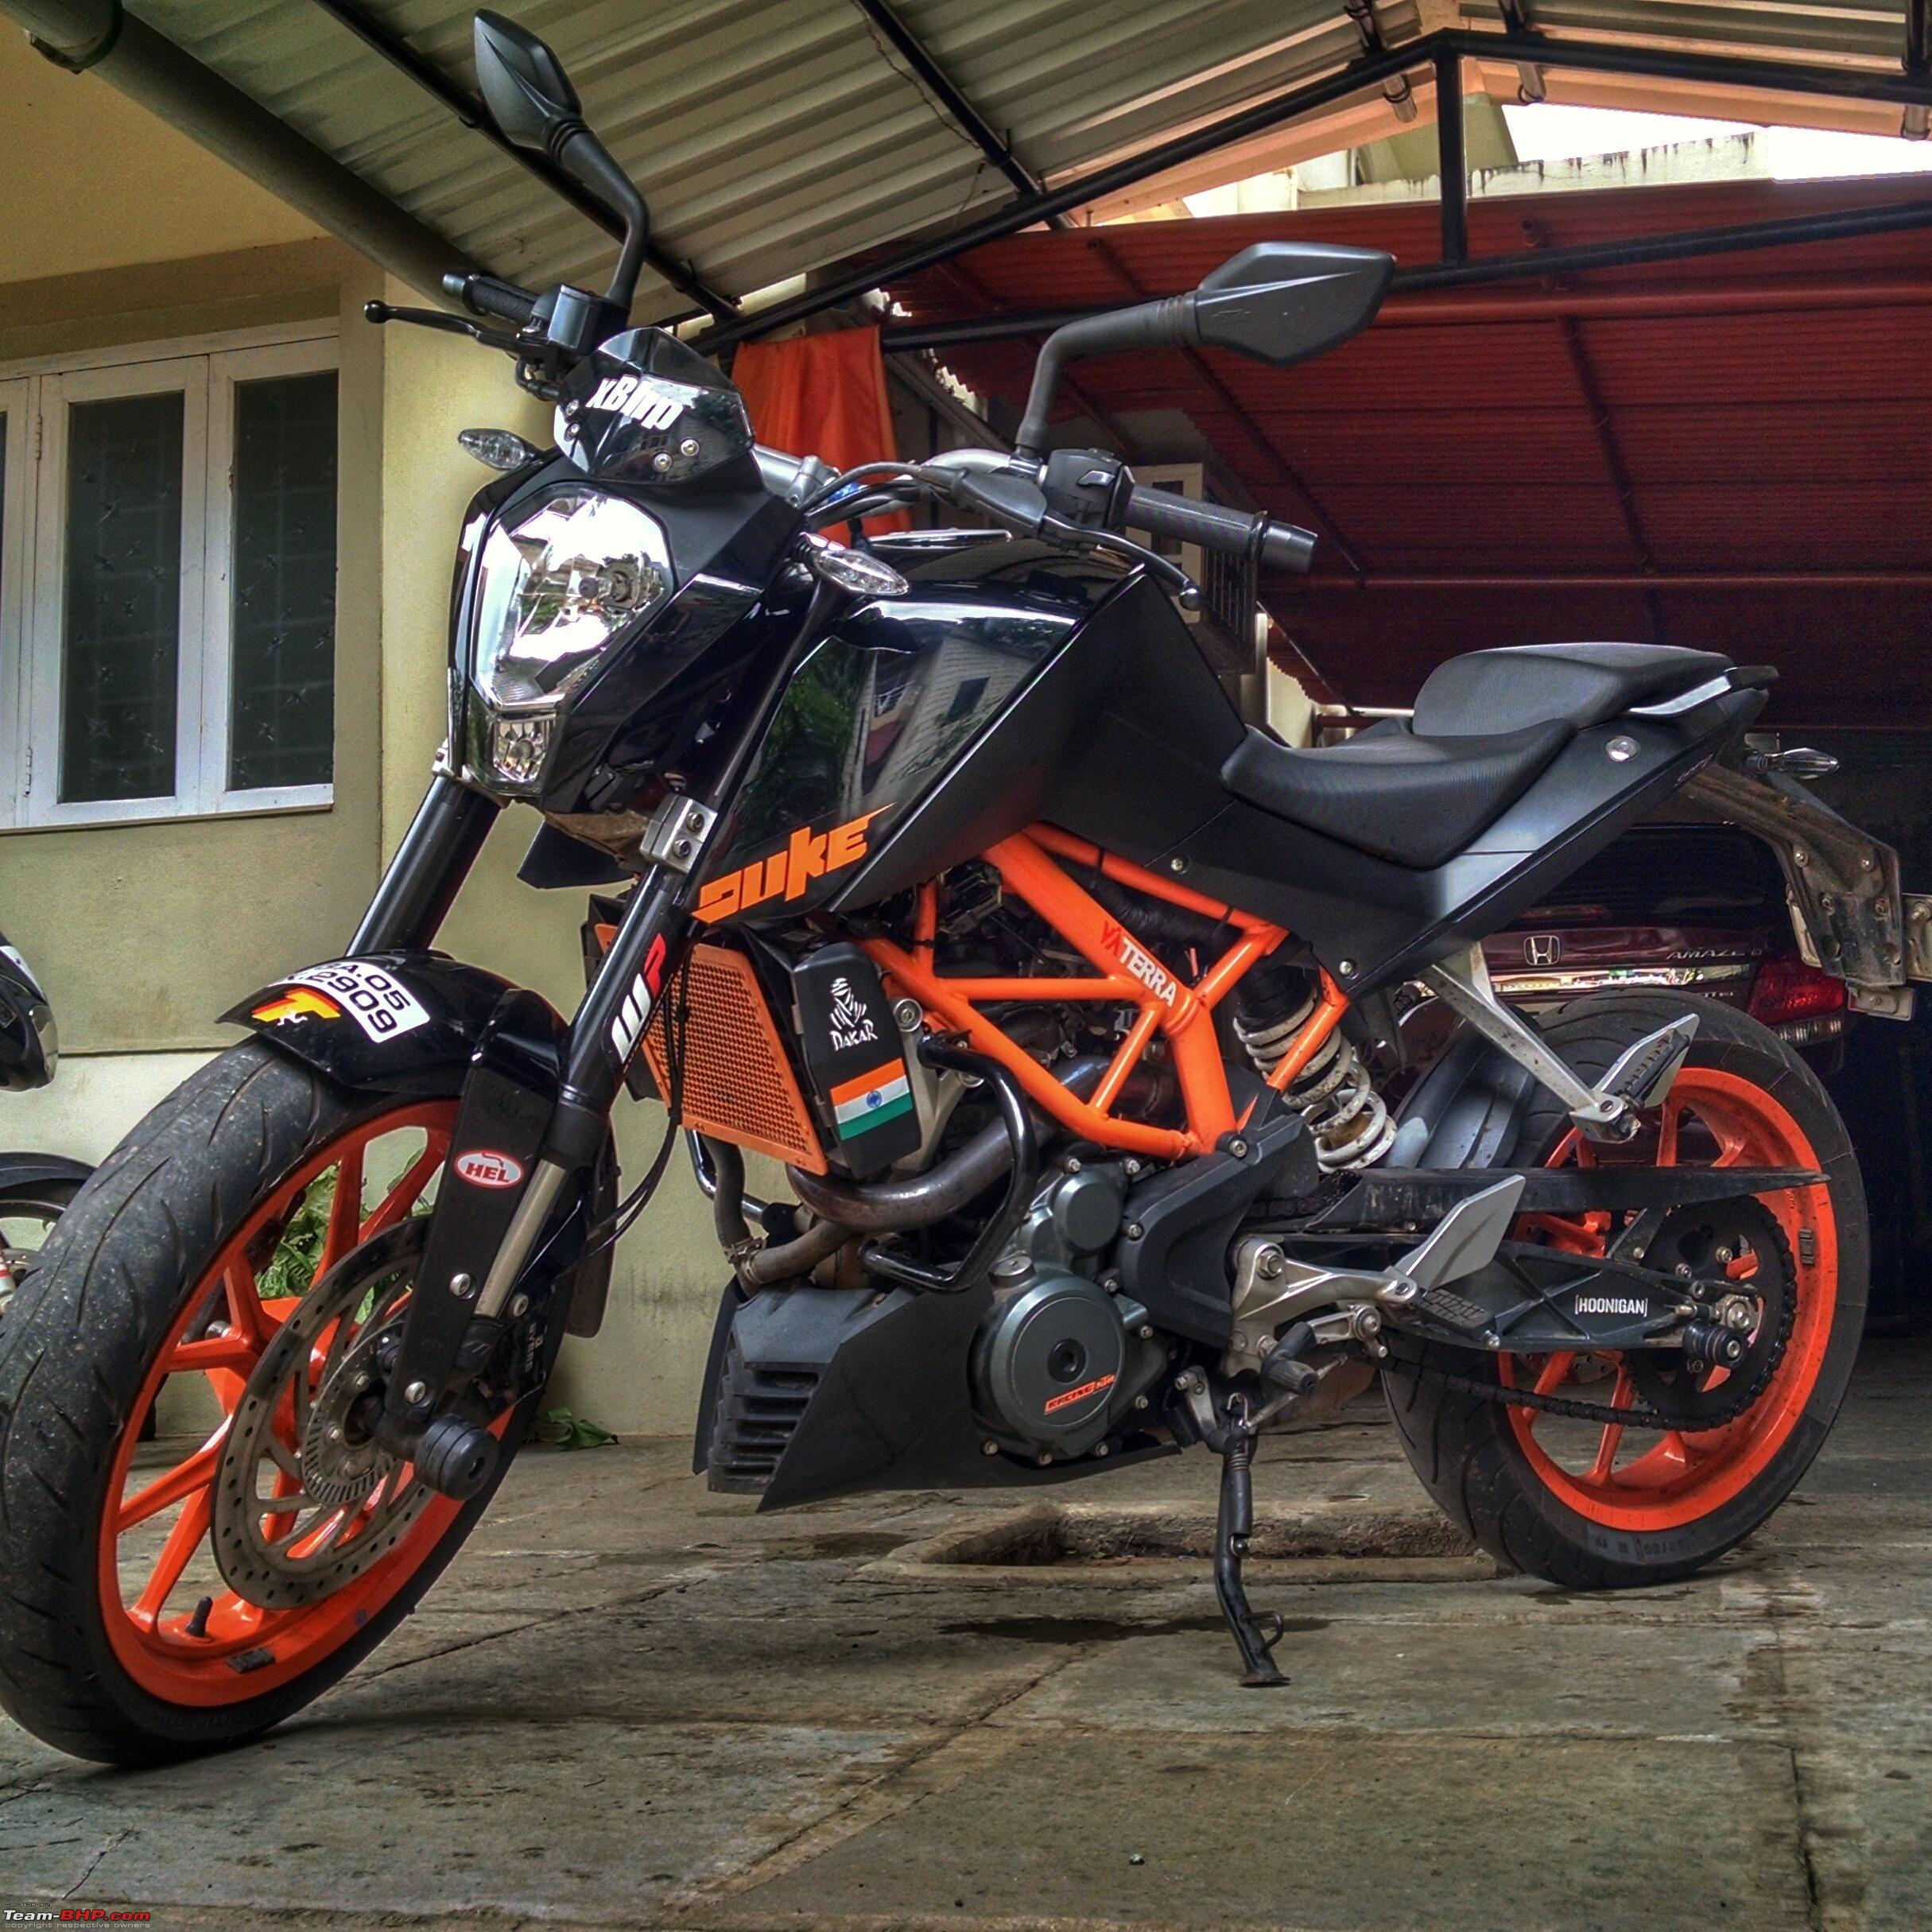 the ktm duke 390 ownership experience thread page 307 team bhp. Black Bedroom Furniture Sets. Home Design Ideas